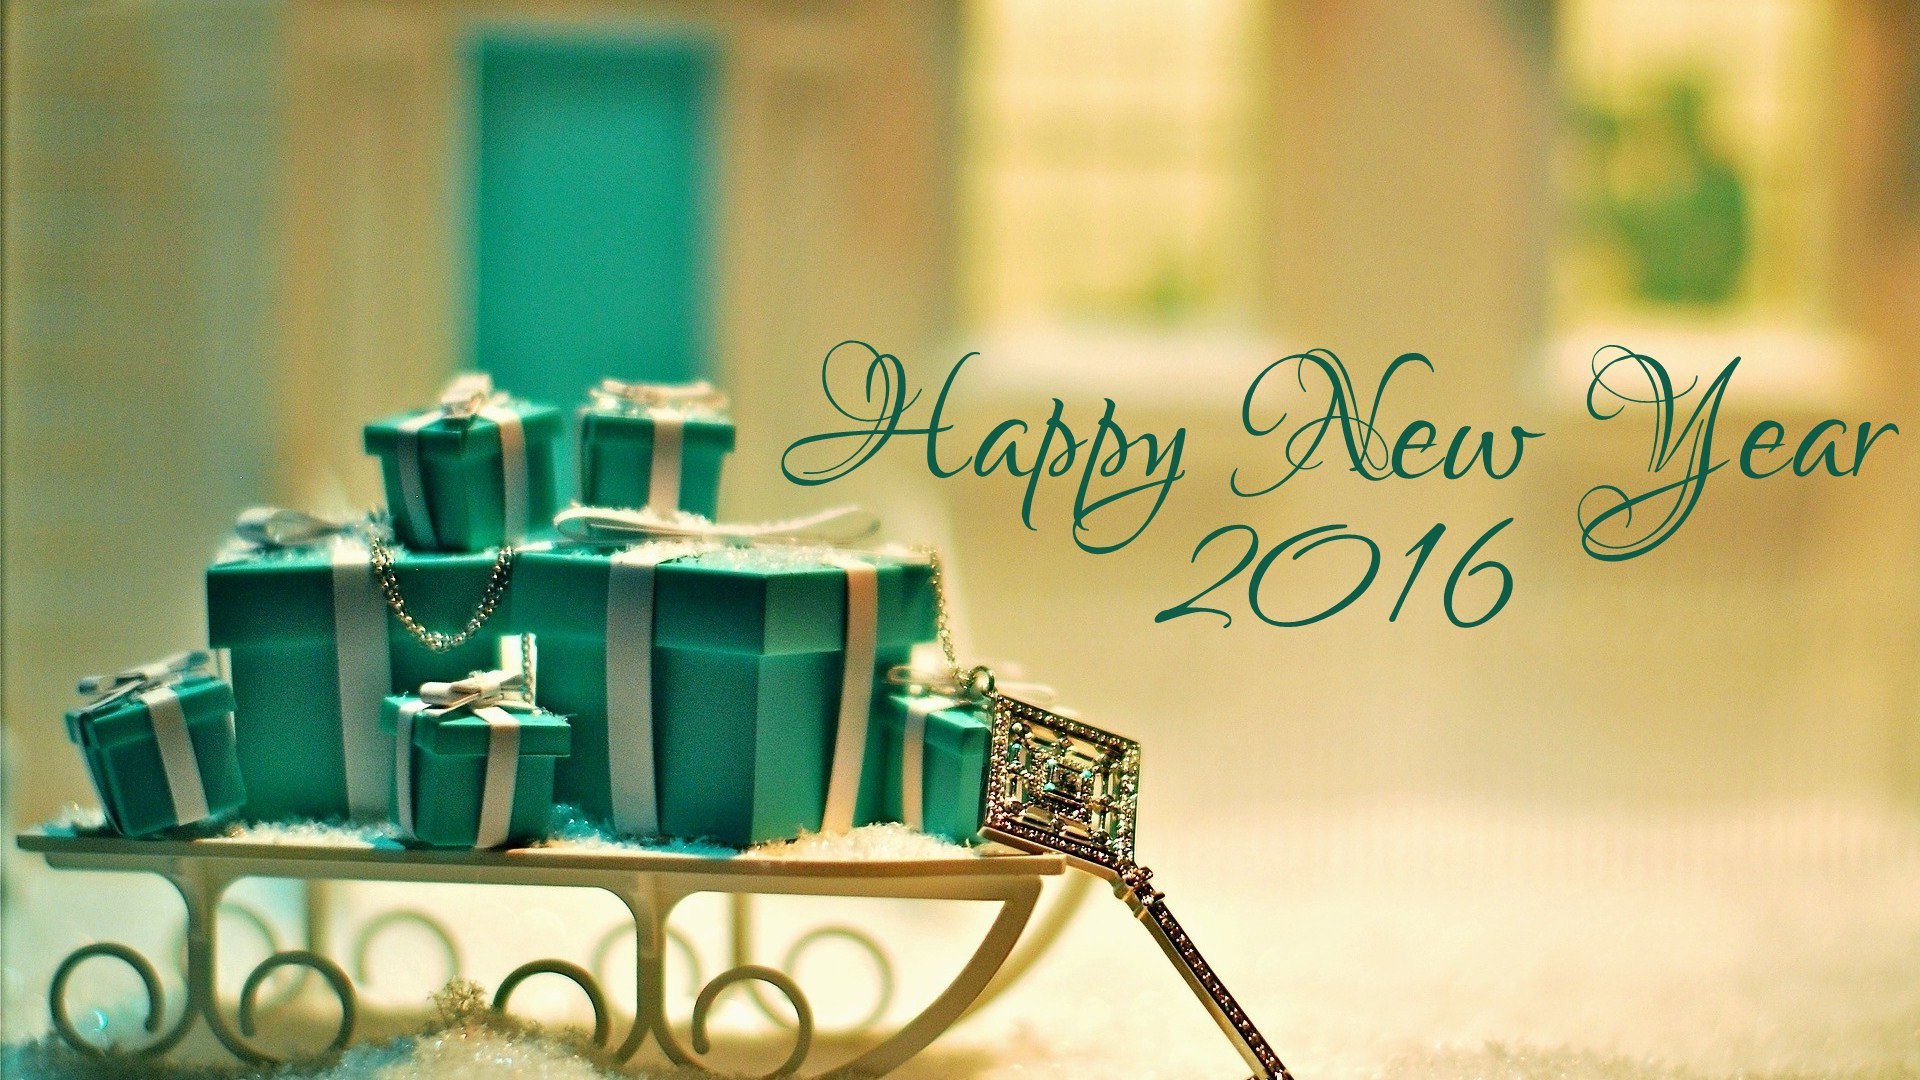 Happy New Year 2016 Wishes And Desktop Wallpapers Download And 1920x1080